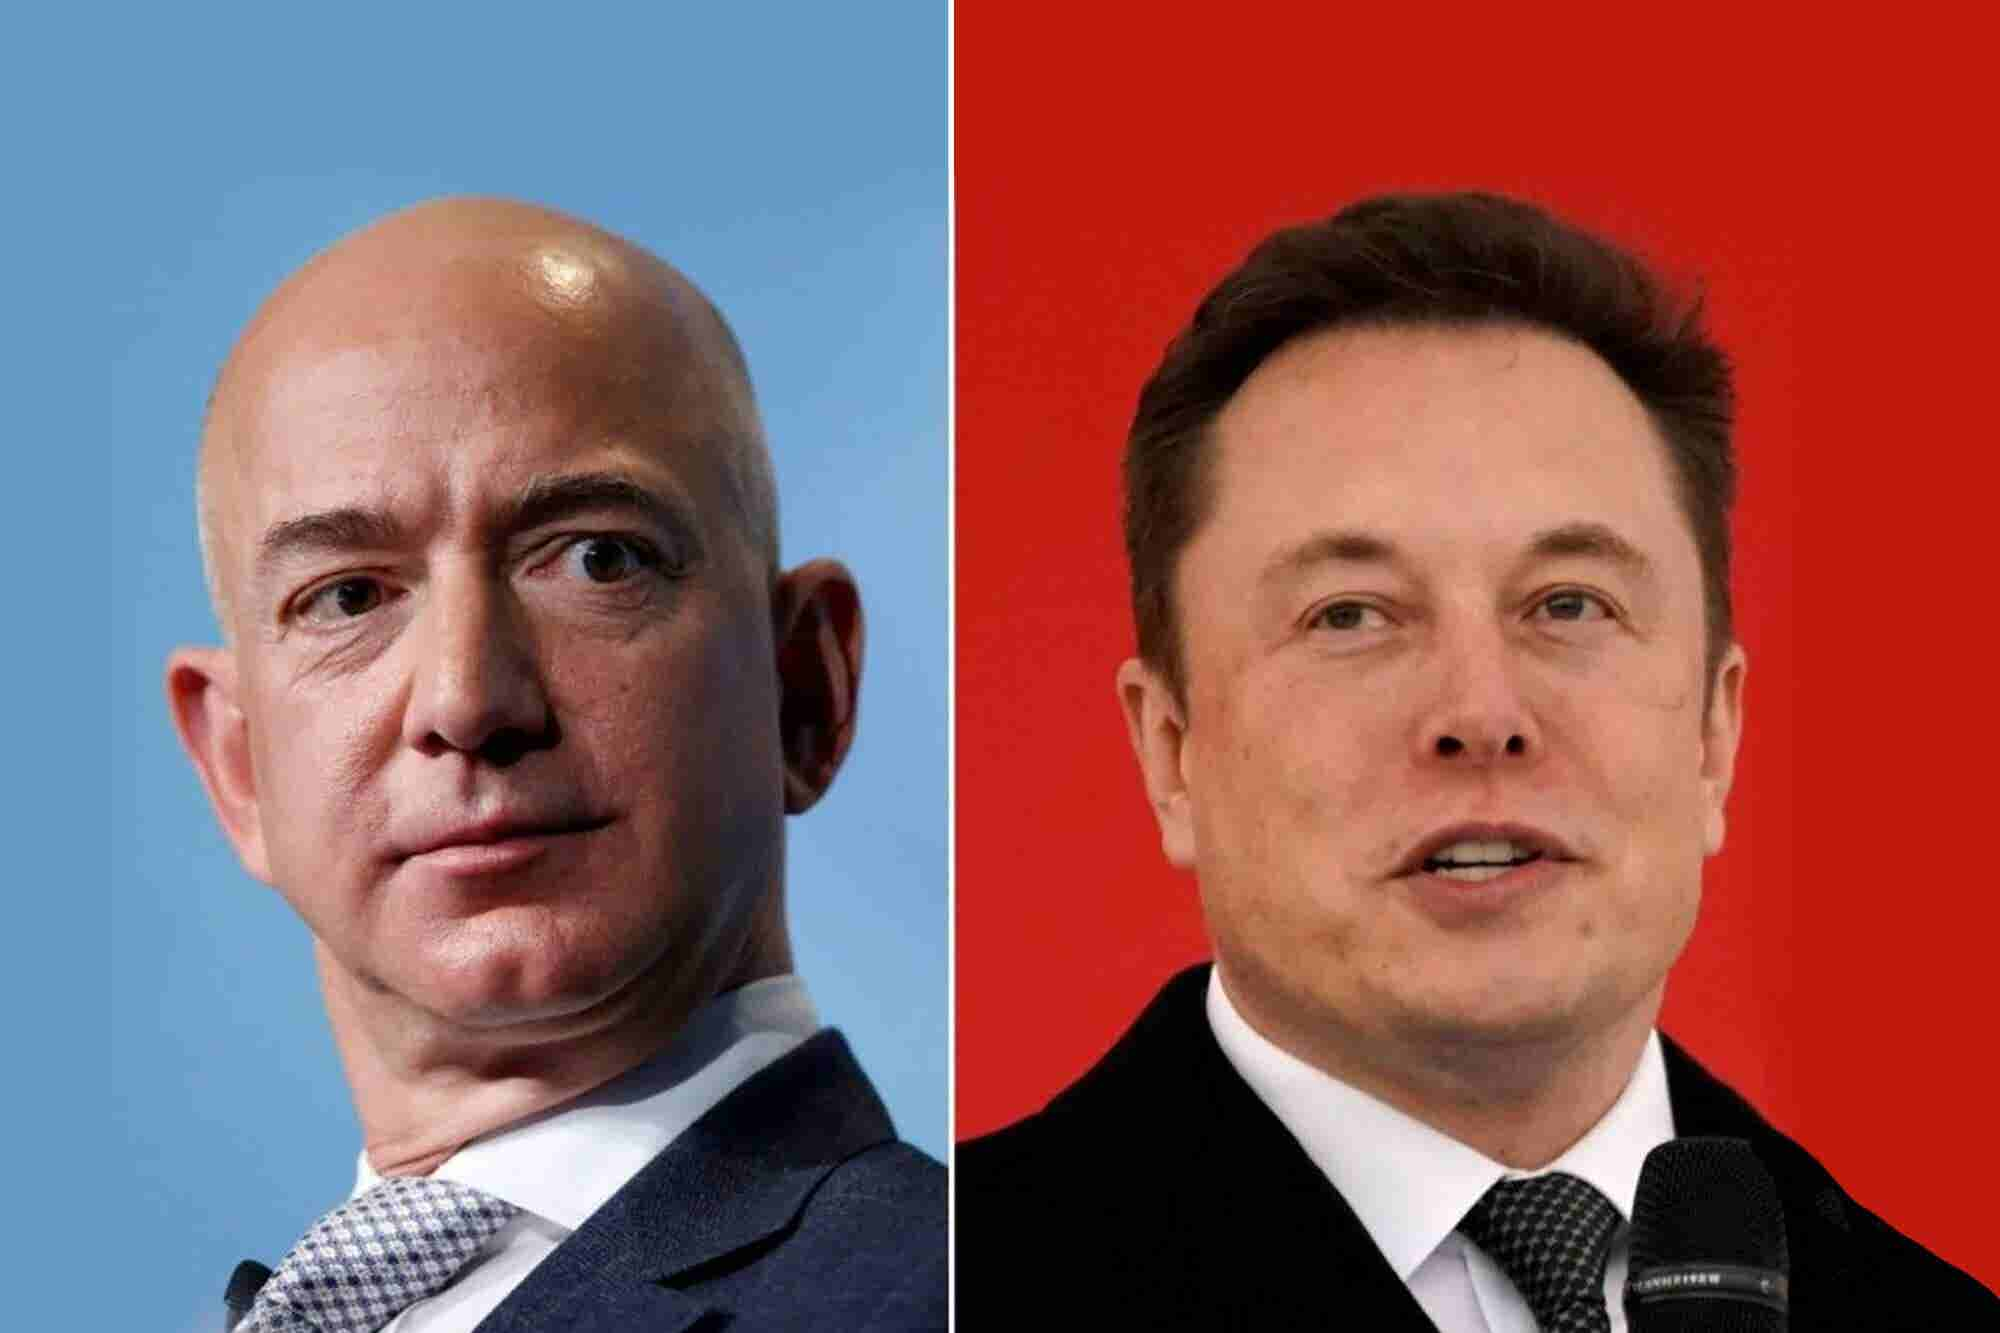 Elon Musk Just Trolled Jeff Bezos on Twitter and It Could Reignite a Years-Old Feud Between the Billionaires